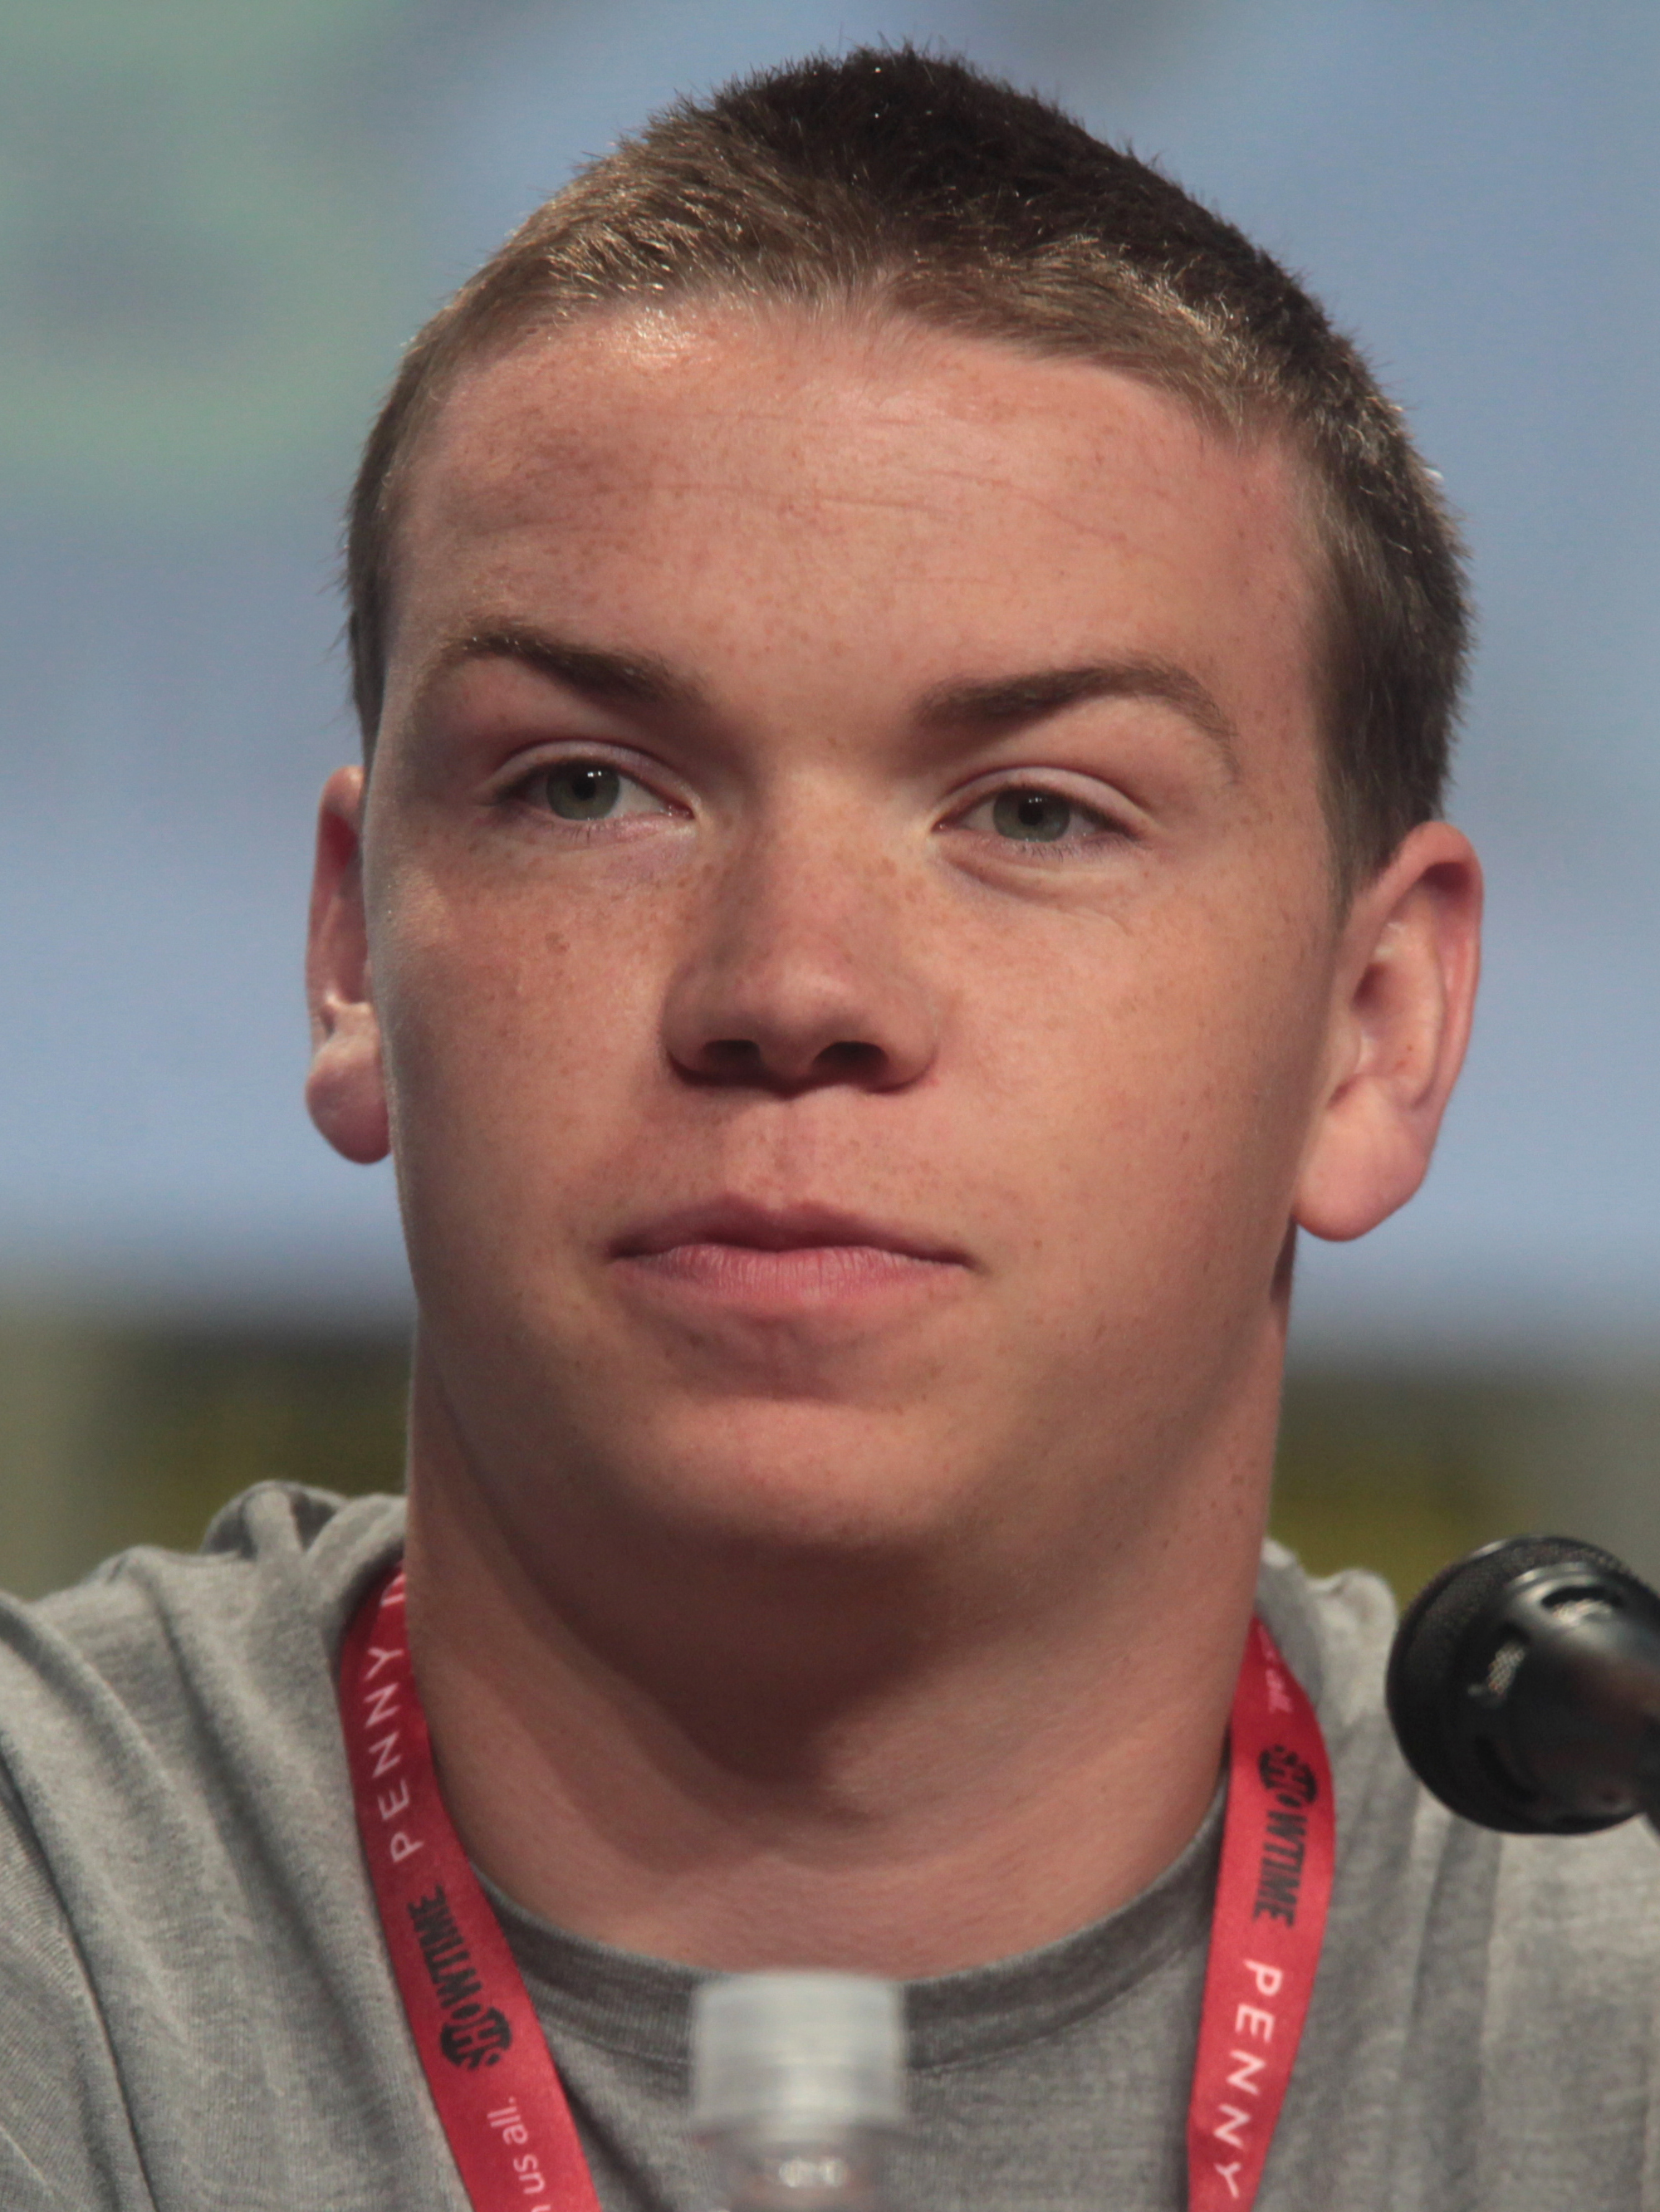 William Poulter (born 1993)